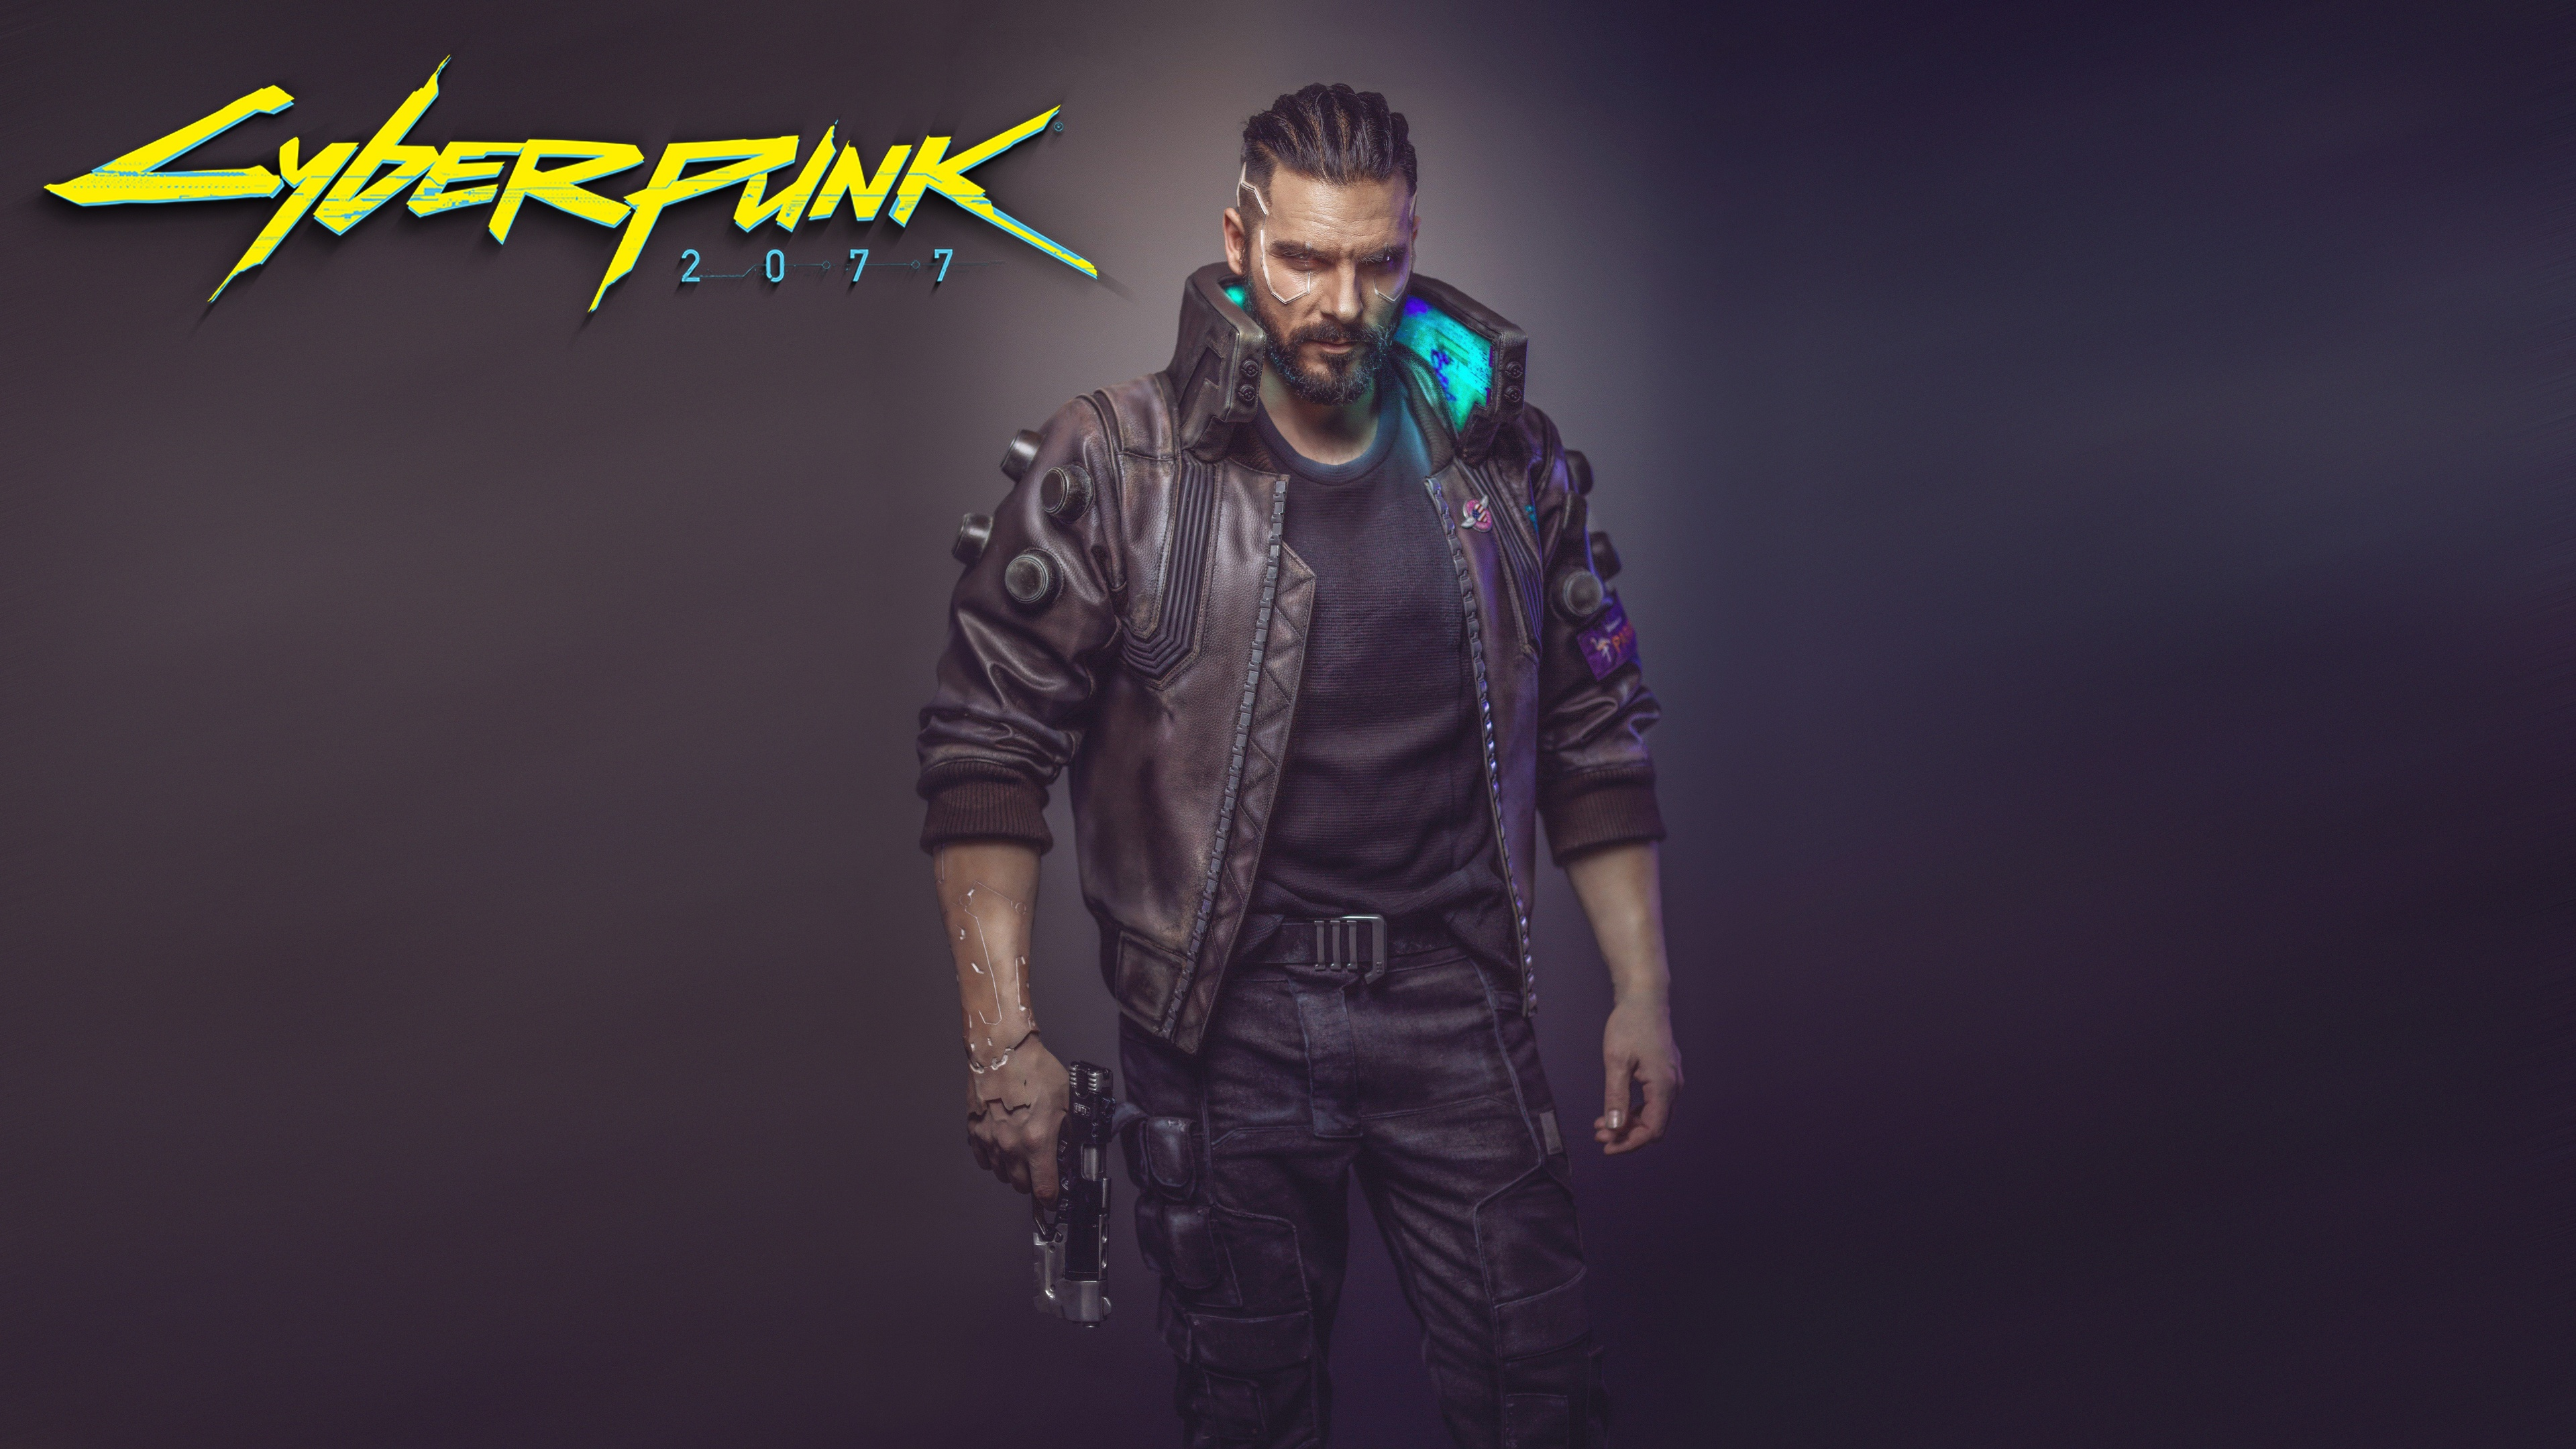 Happy Holidays Anime Girl Wallpaper 1920x1080 Cyberpunk 2077 Cosplay 8k Xbox Games Wallpapers Ps Games